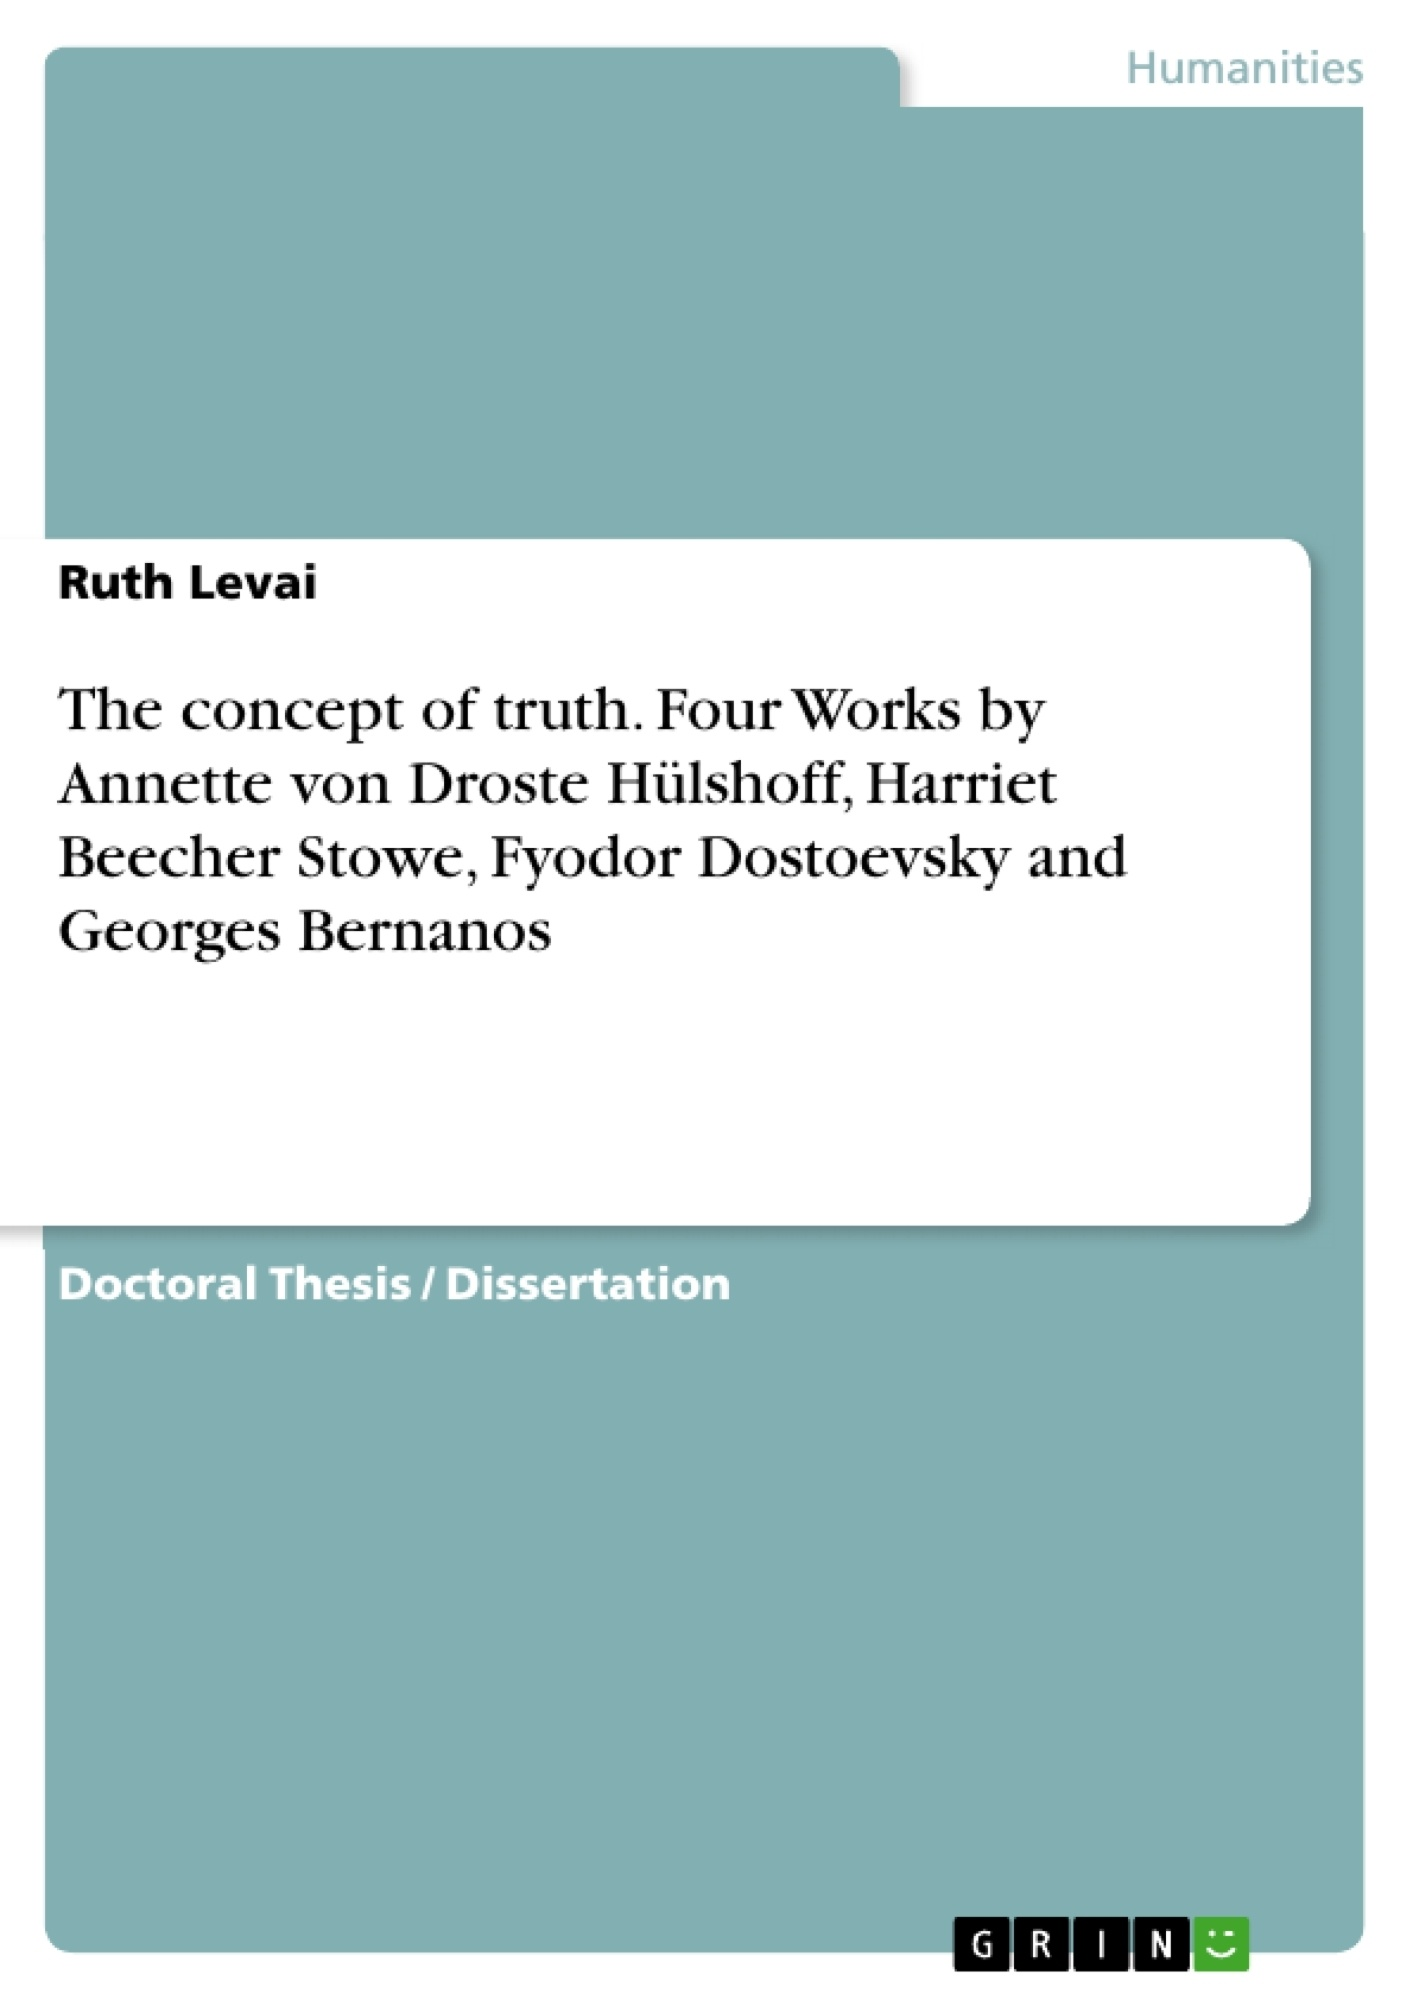 Title: The concept of truth. Four Works by Annette von Droste Hülshoff, Harriet Beecher Stowe, Fyodor Dostoevsky and Georges Bernanos